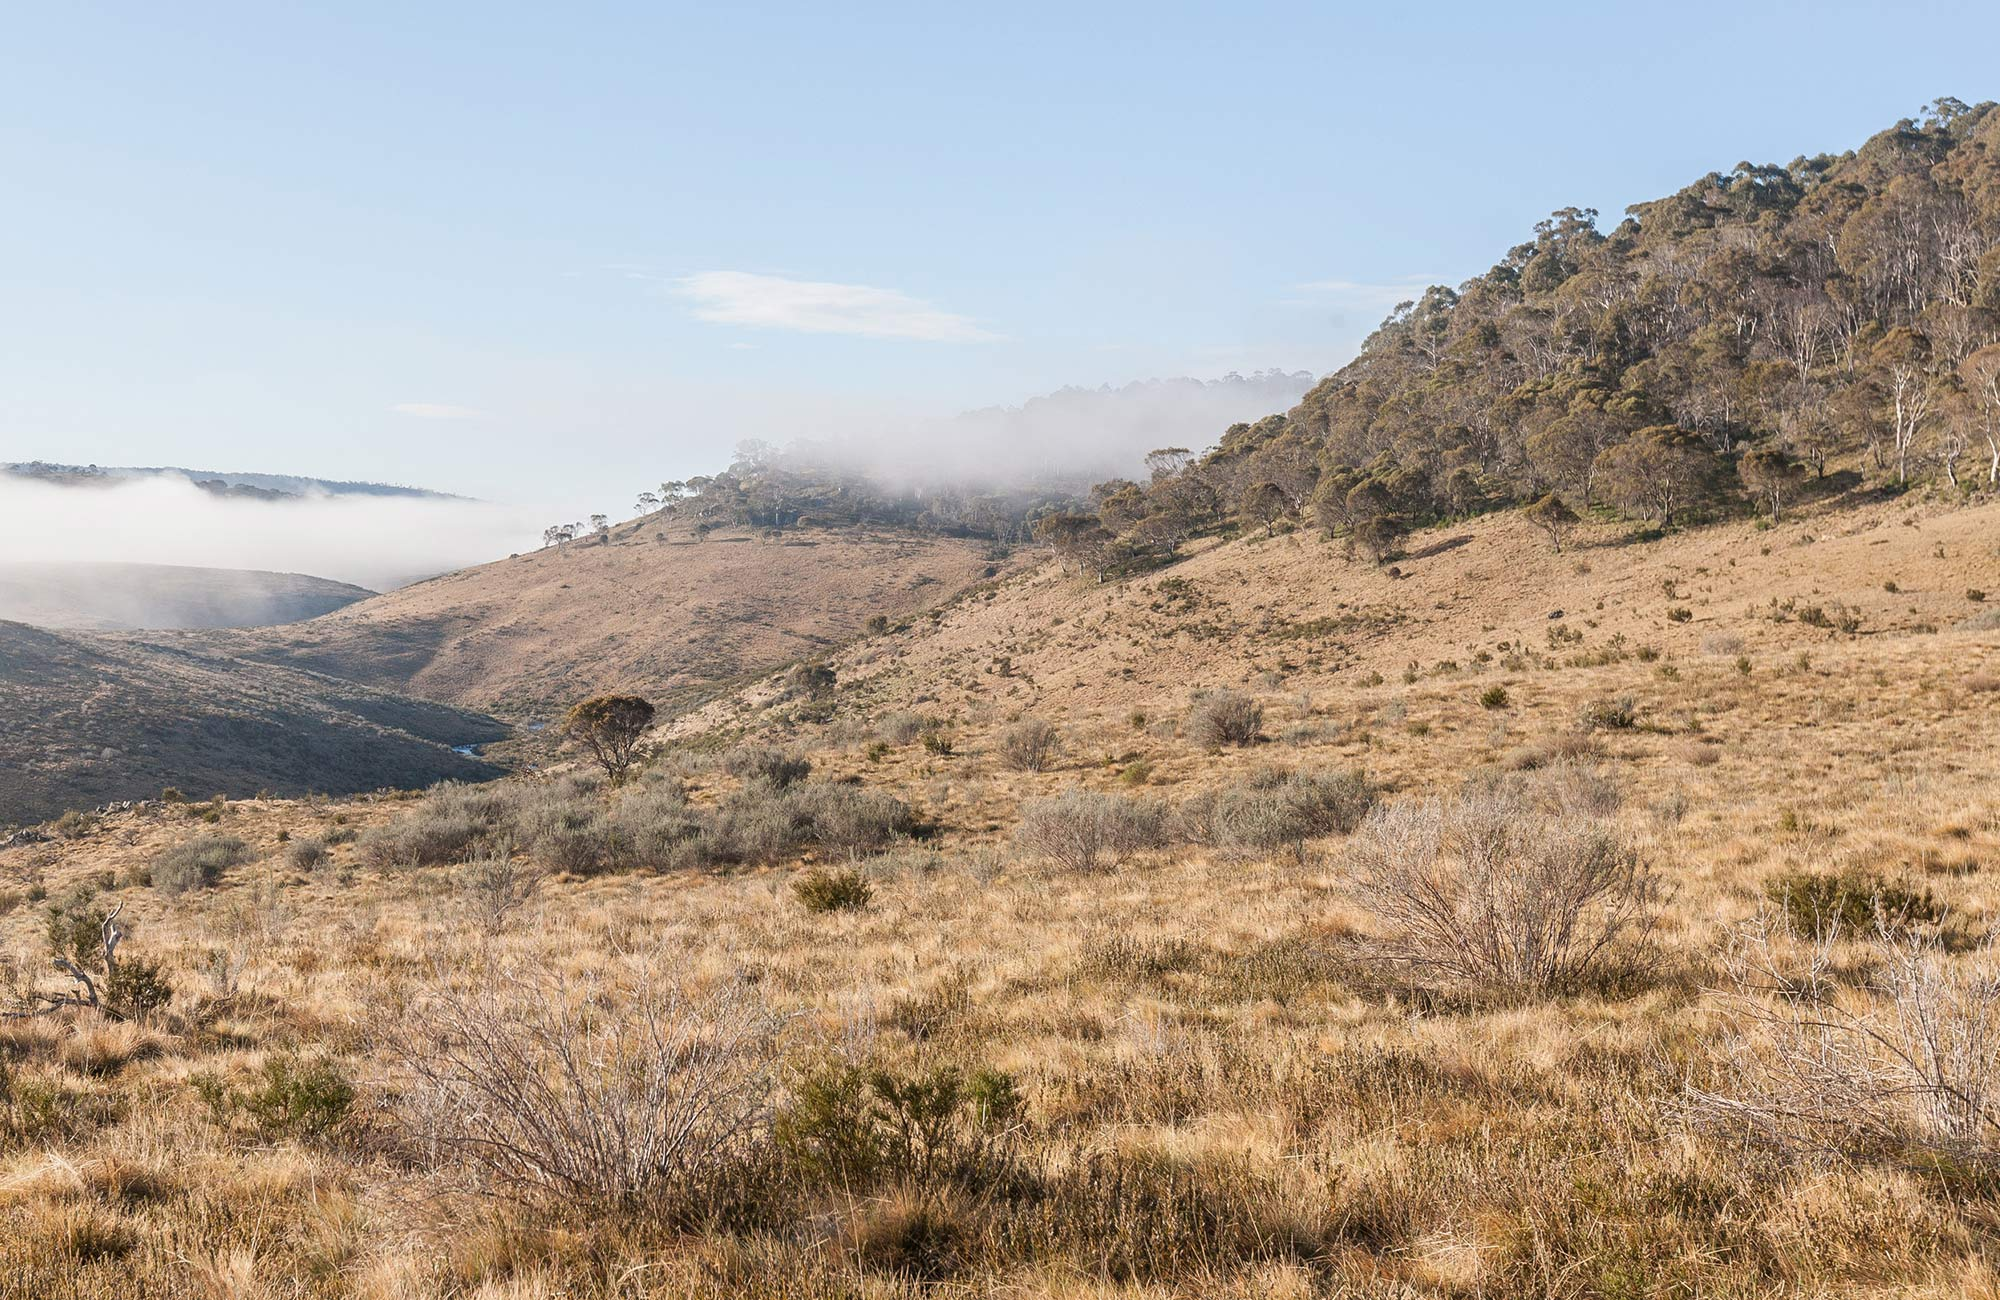 View of sub-alpine plain and mist-filled valley near Bullocks Hill trail, northern Kosciuszko National Park. Photo: Murray Vanderveer/OEH